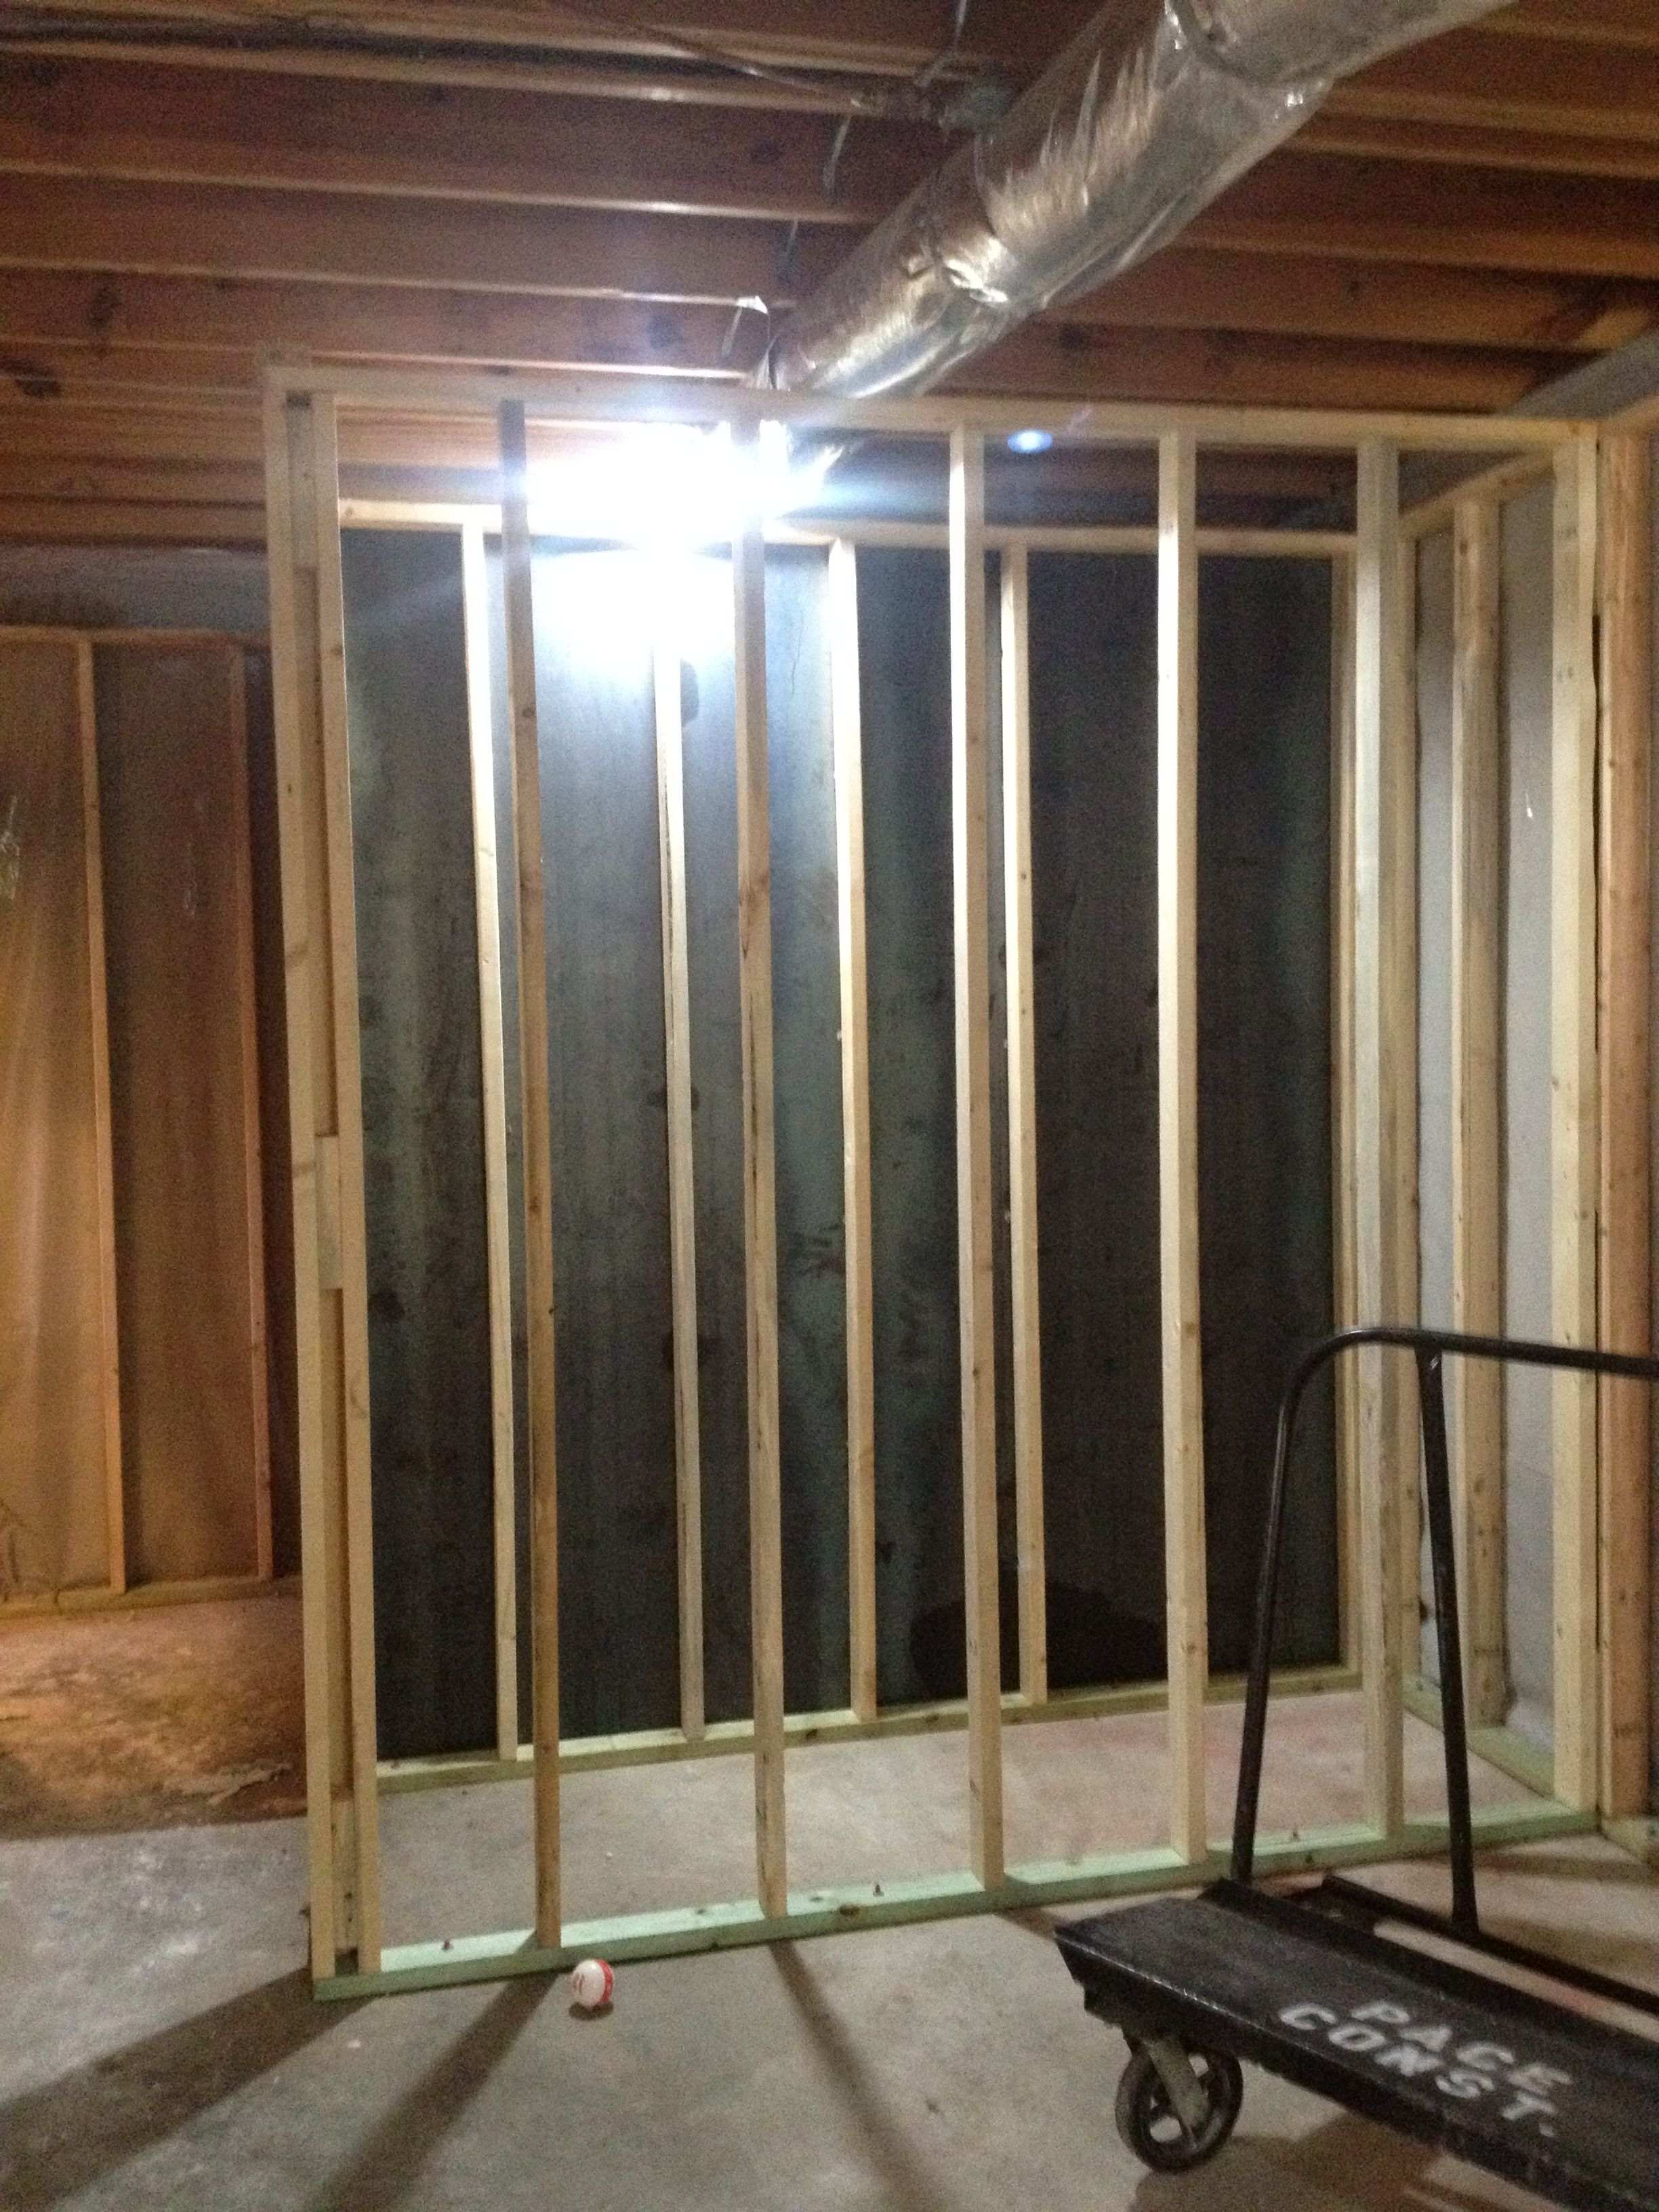 During the framing stage the bathroom wall was reinforced for How to build a safe room in your basement